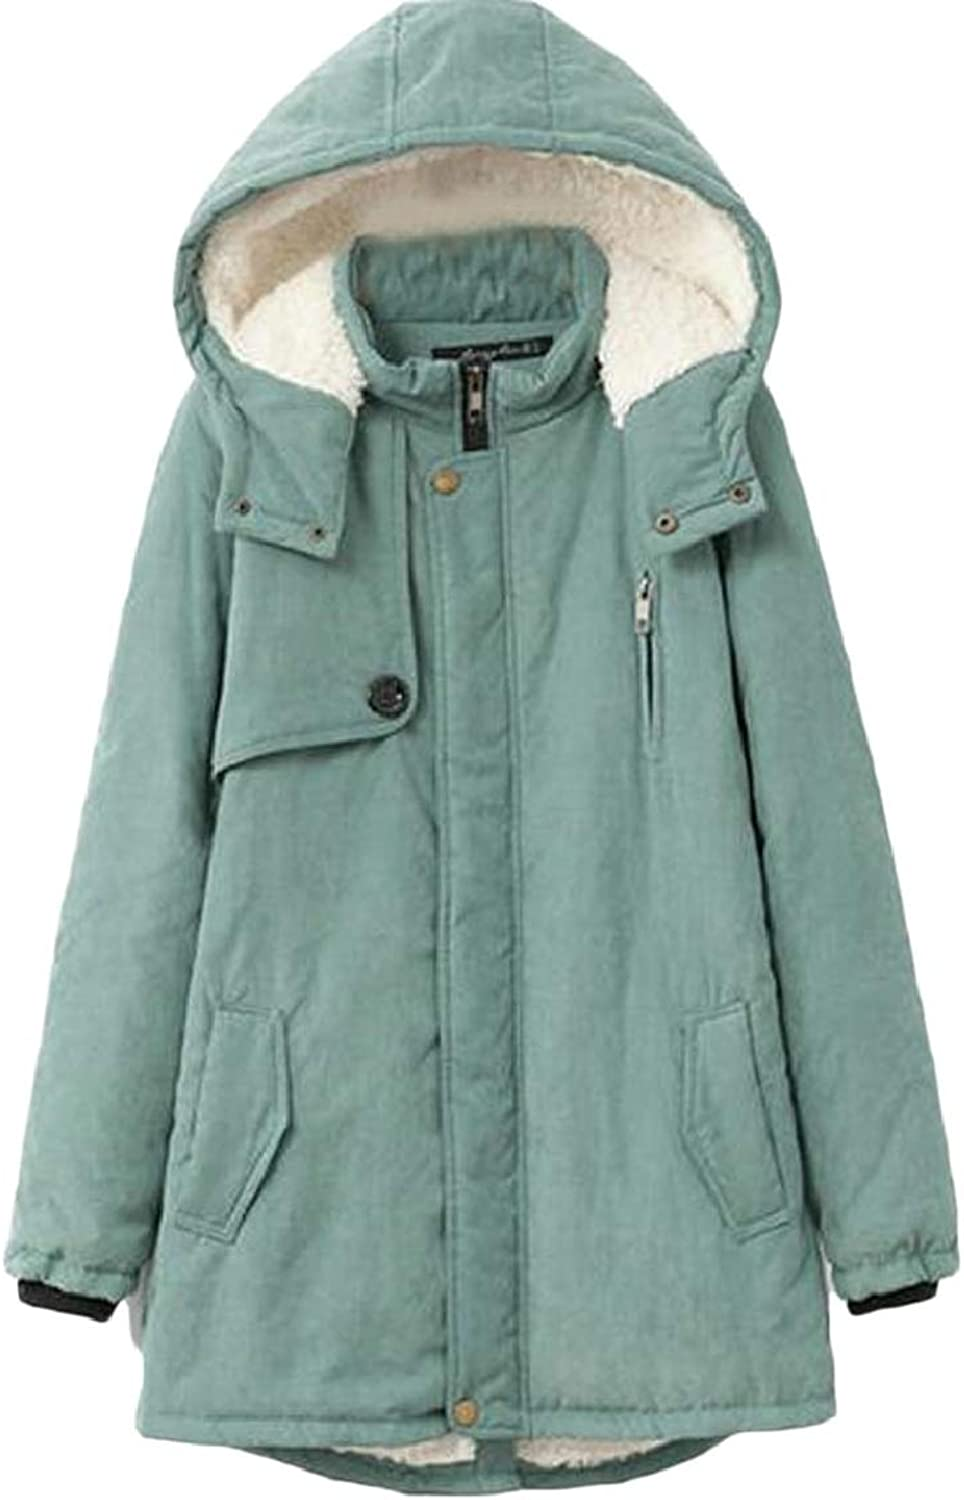 RGCA Womens Large Size Fleece Lined Thick Parka Coat Hooded Jacket